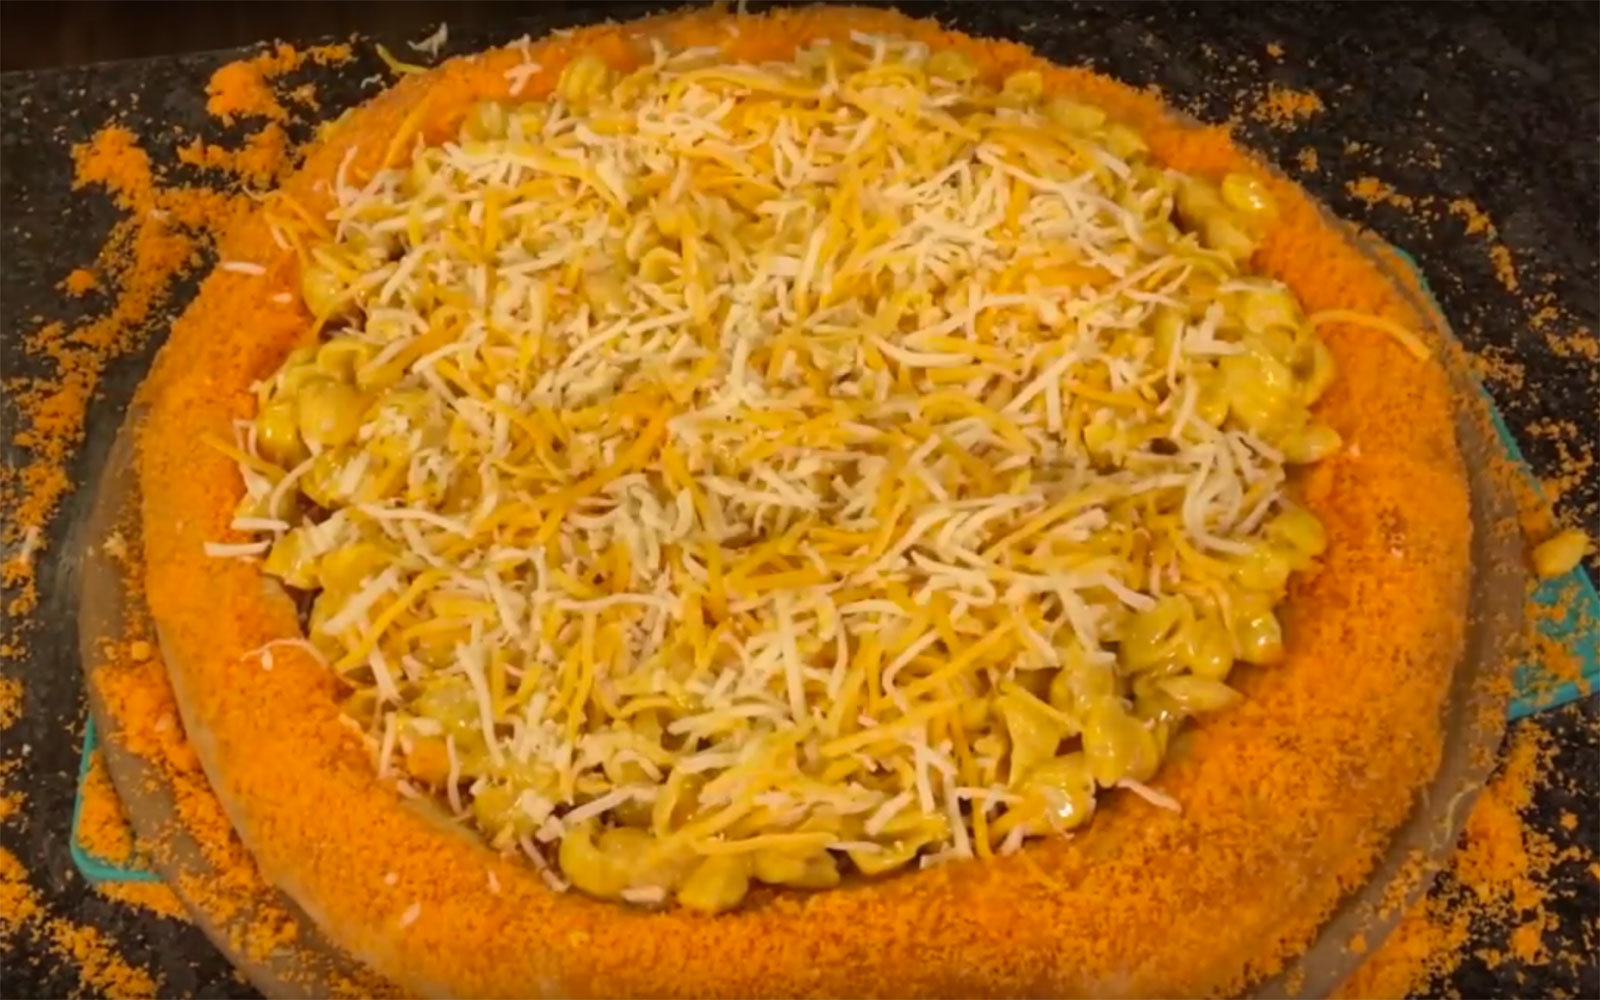 People Are Losing Their Minds Over This Mac 'N Cheetos Pizza